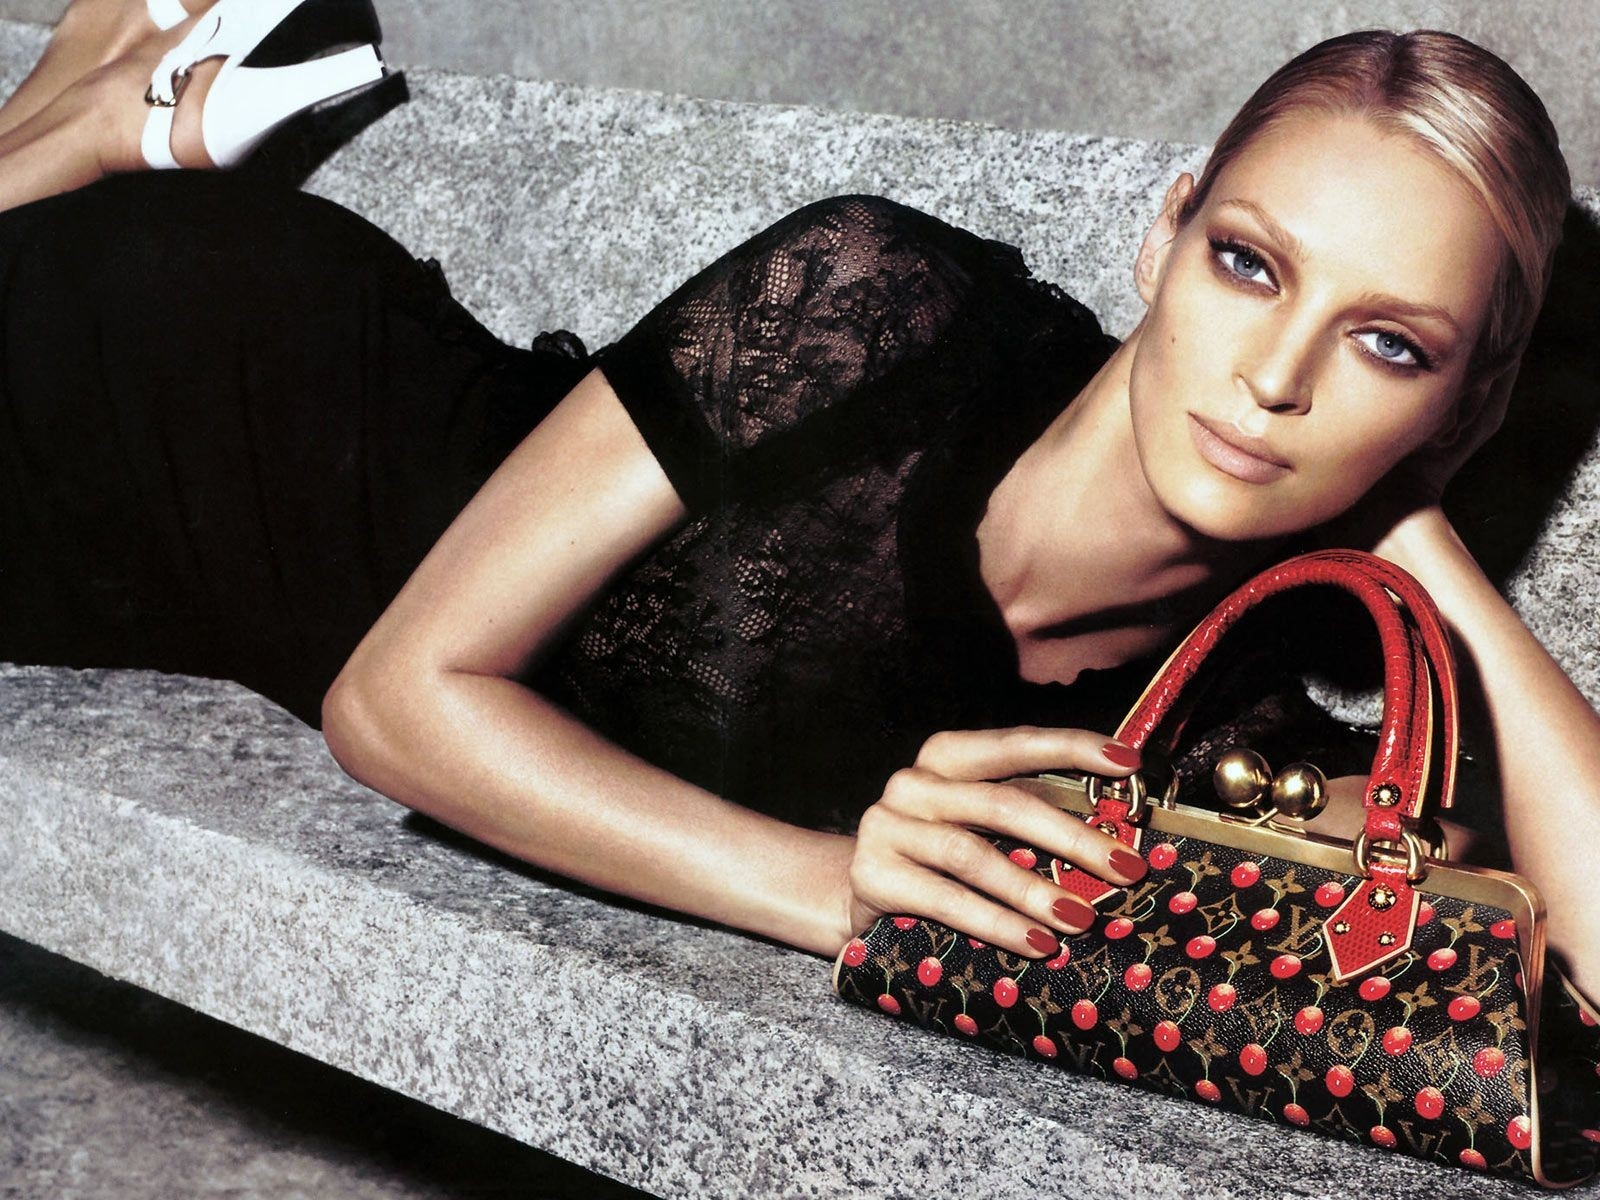 Wallpaper di Uma Thurman per Luisi Vuitton